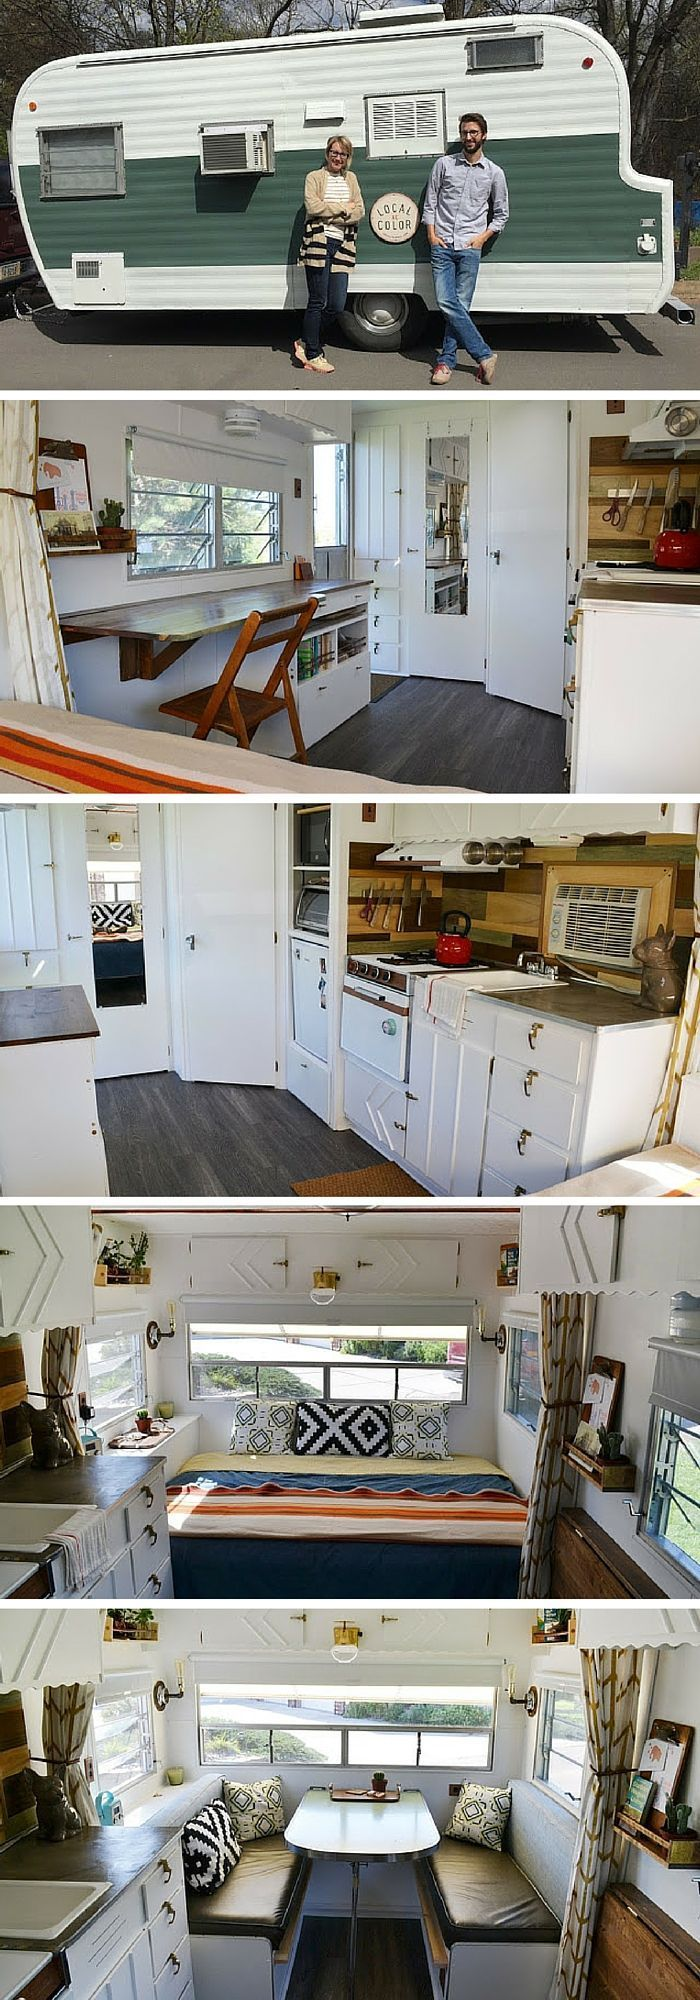 Astounding Best Vintage Camper Interior https://camperism.co/2017/12/27/best-vintage-camper-interior/ The choice of the 5th wheel pulled by means of a pick up truck is also a favorite selection. When you are prepared to acquire a camper,